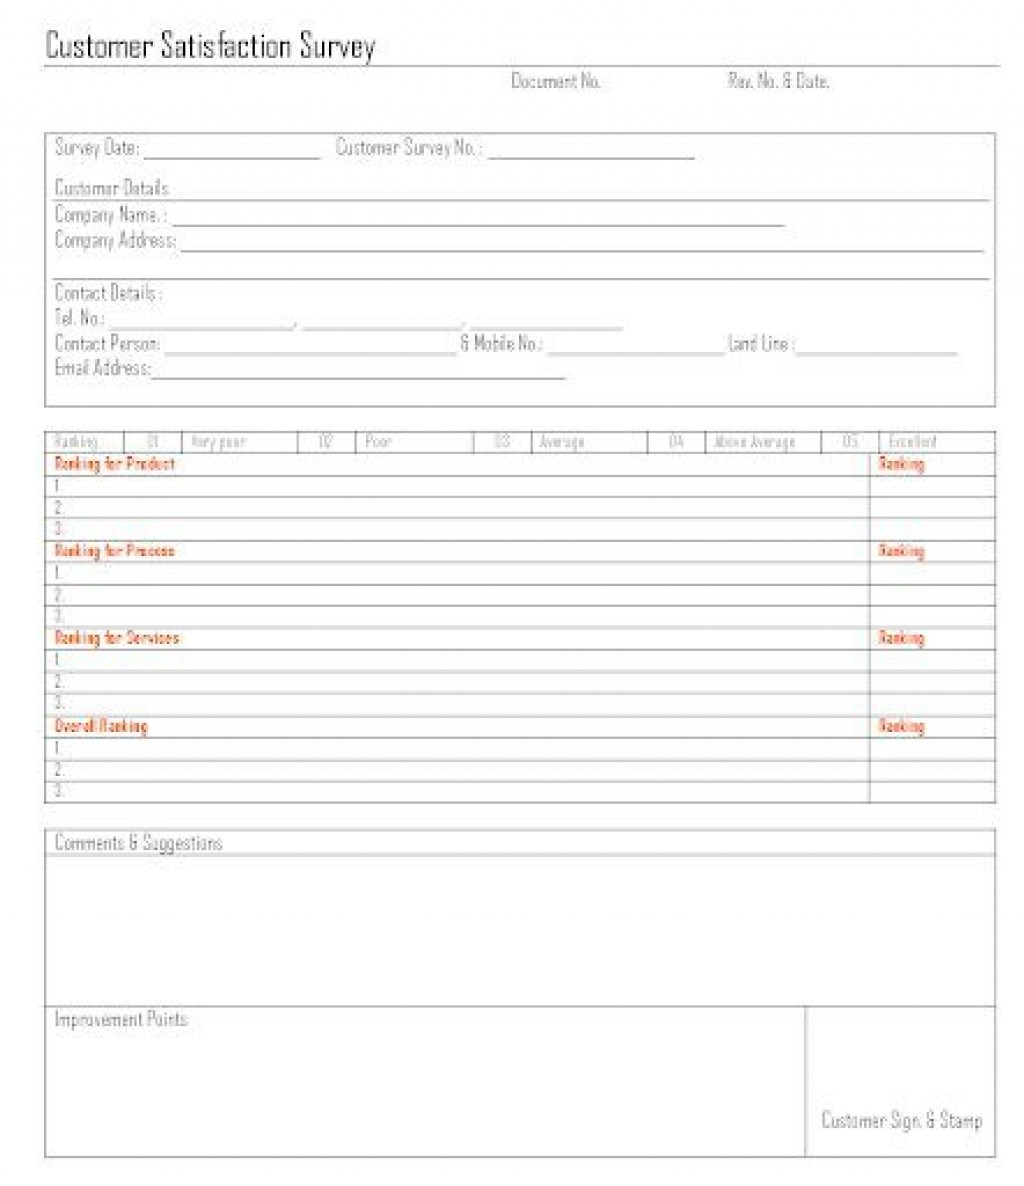 009 Outstanding Customer Satisfaction Survey Template Word Inspiration  Doc FormLarge